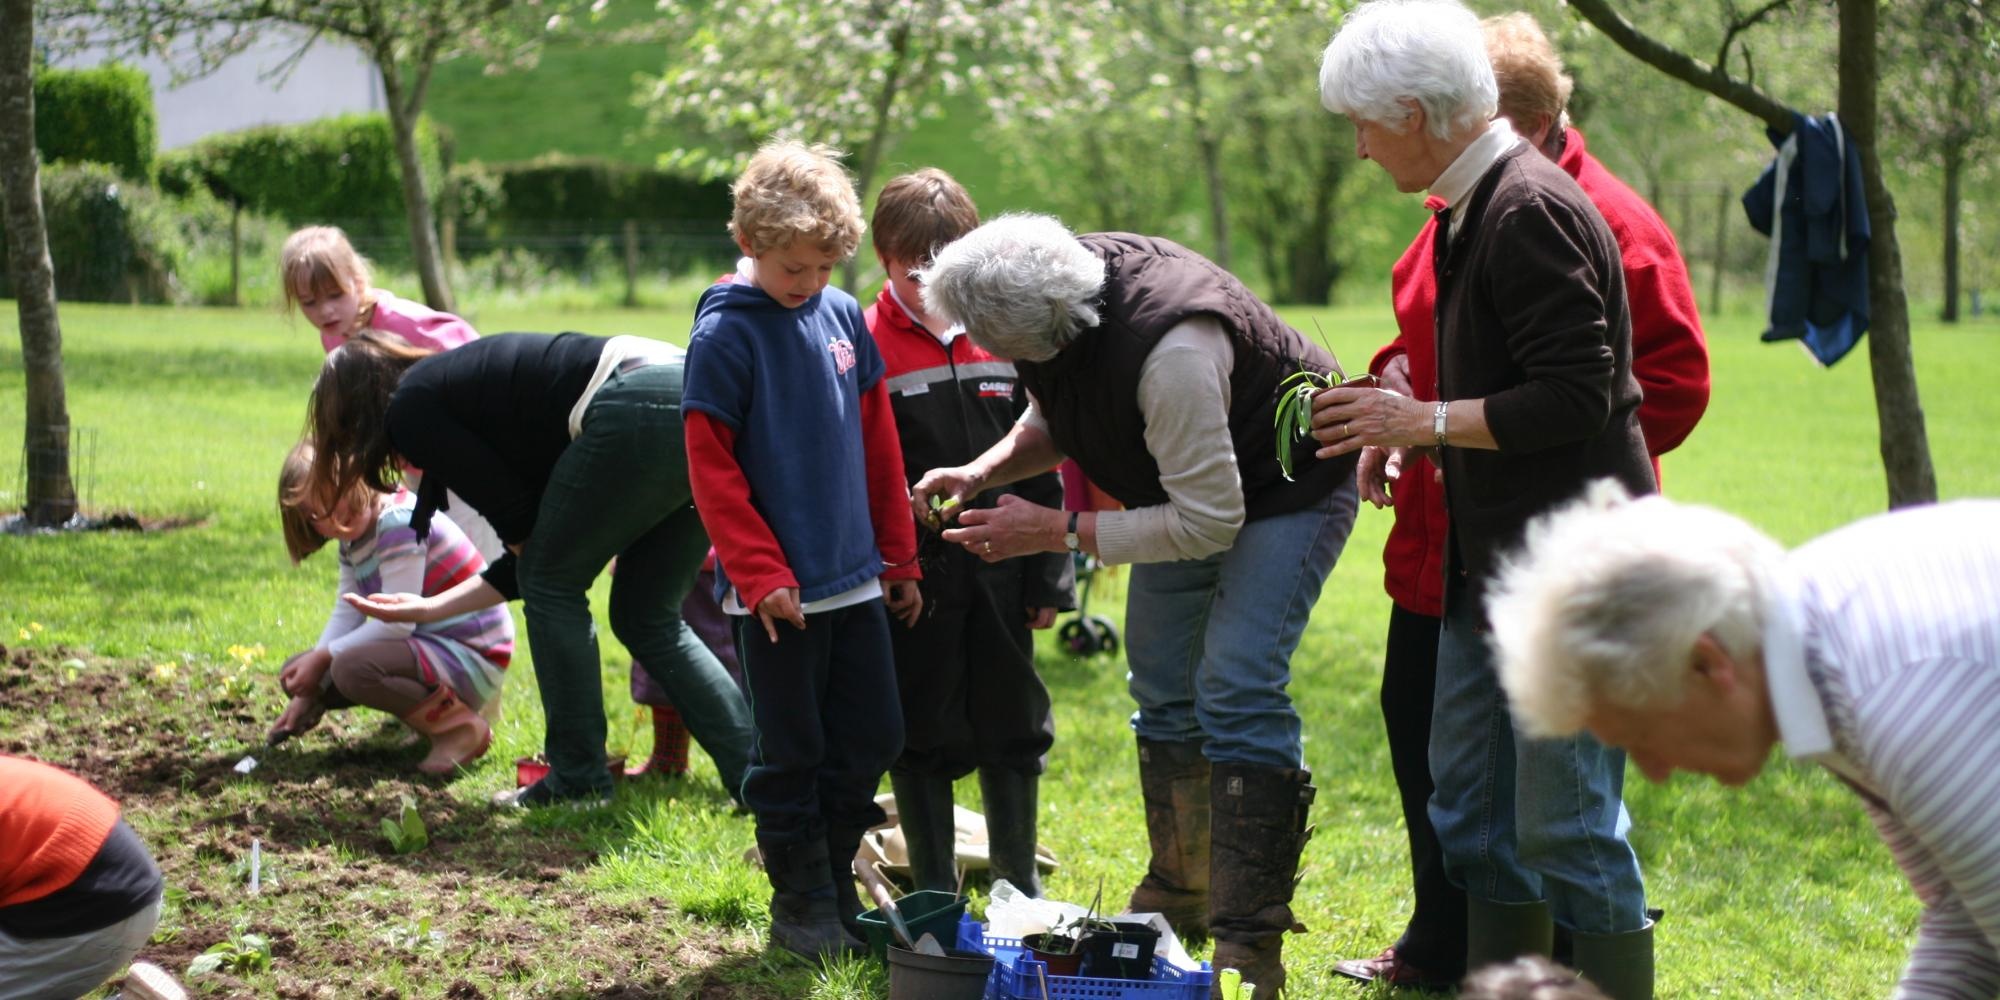 Planting wildflowers in Bickleigh orchard